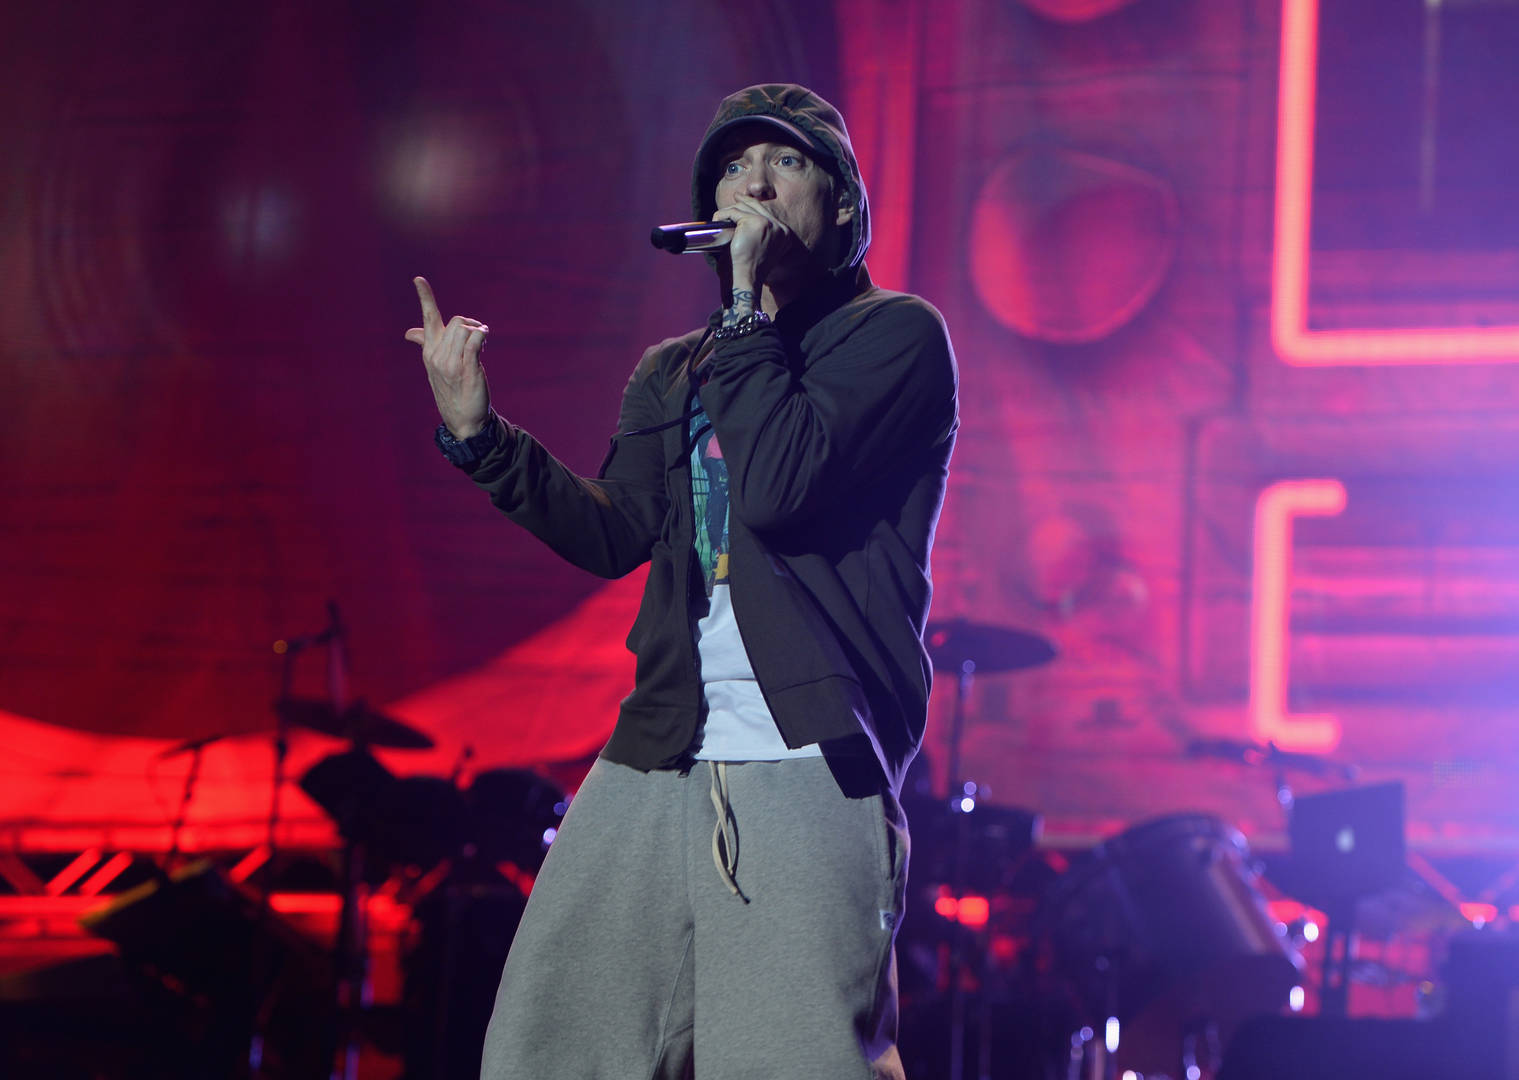 Eminem Re-Ups On Original Throwback Merch Designs